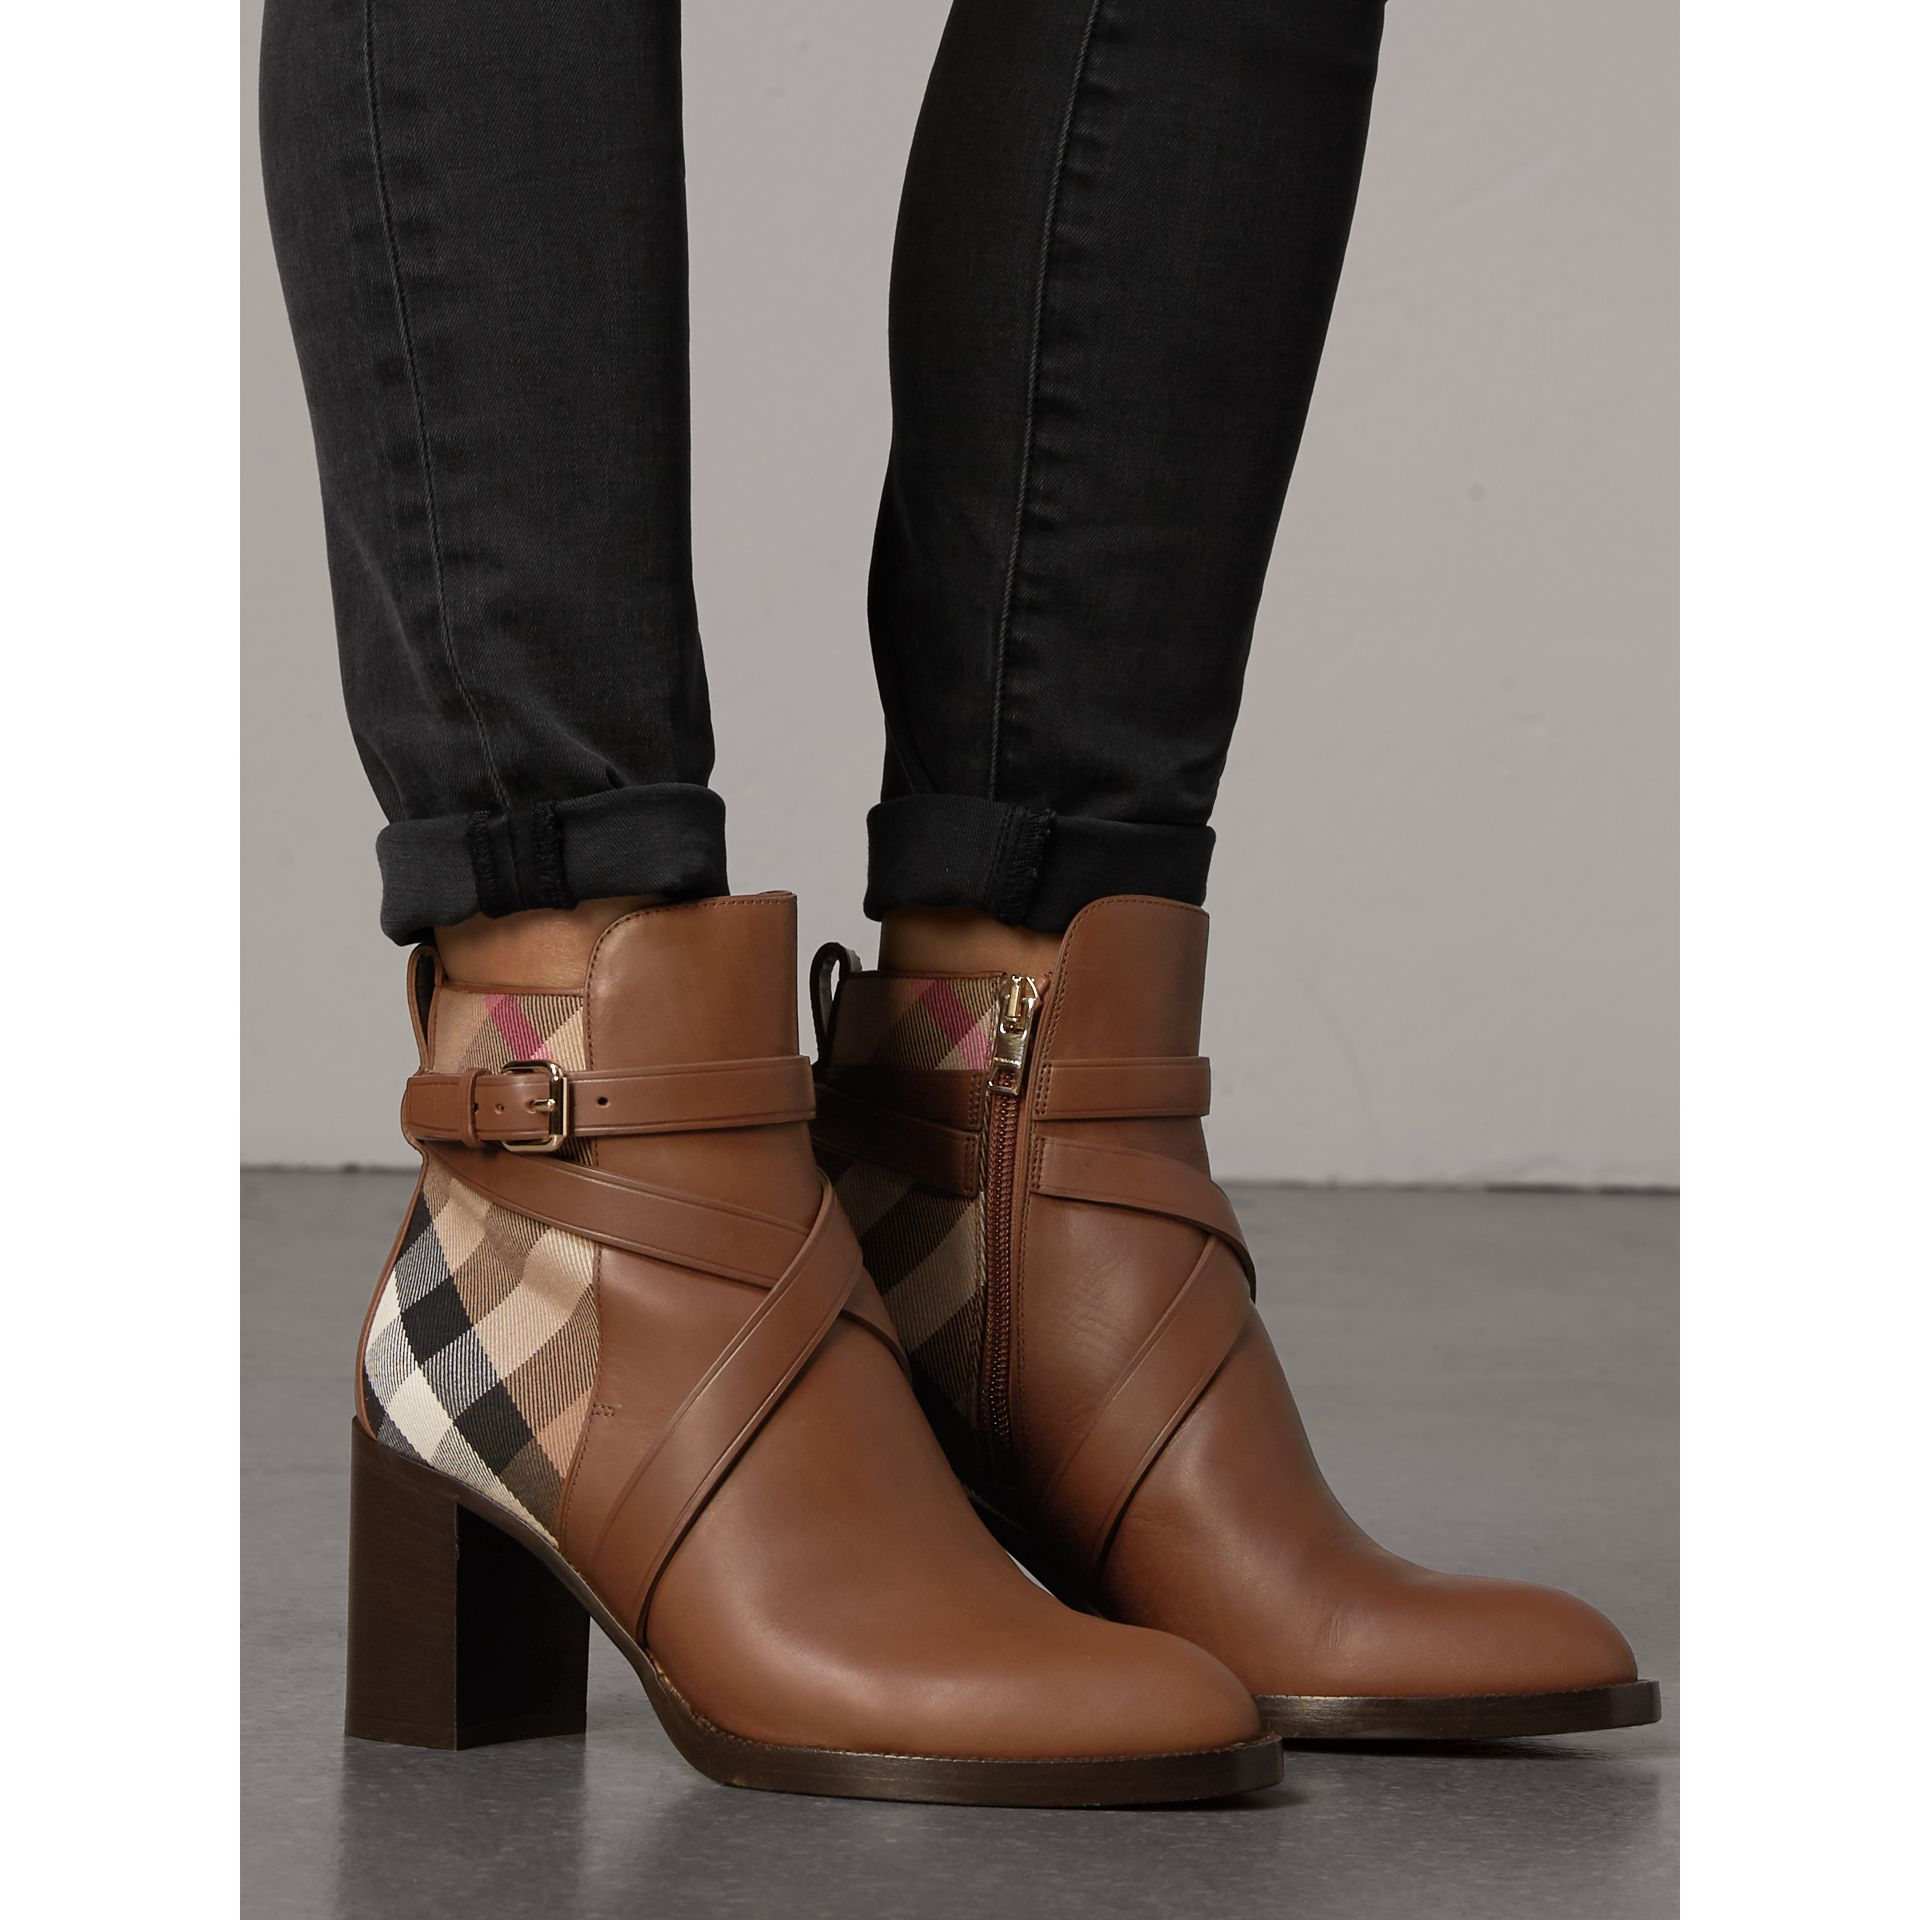 Bottines en cuir et coton House check (Camel Vif) - Femme | Burberry Canada - photo de la galerie 2